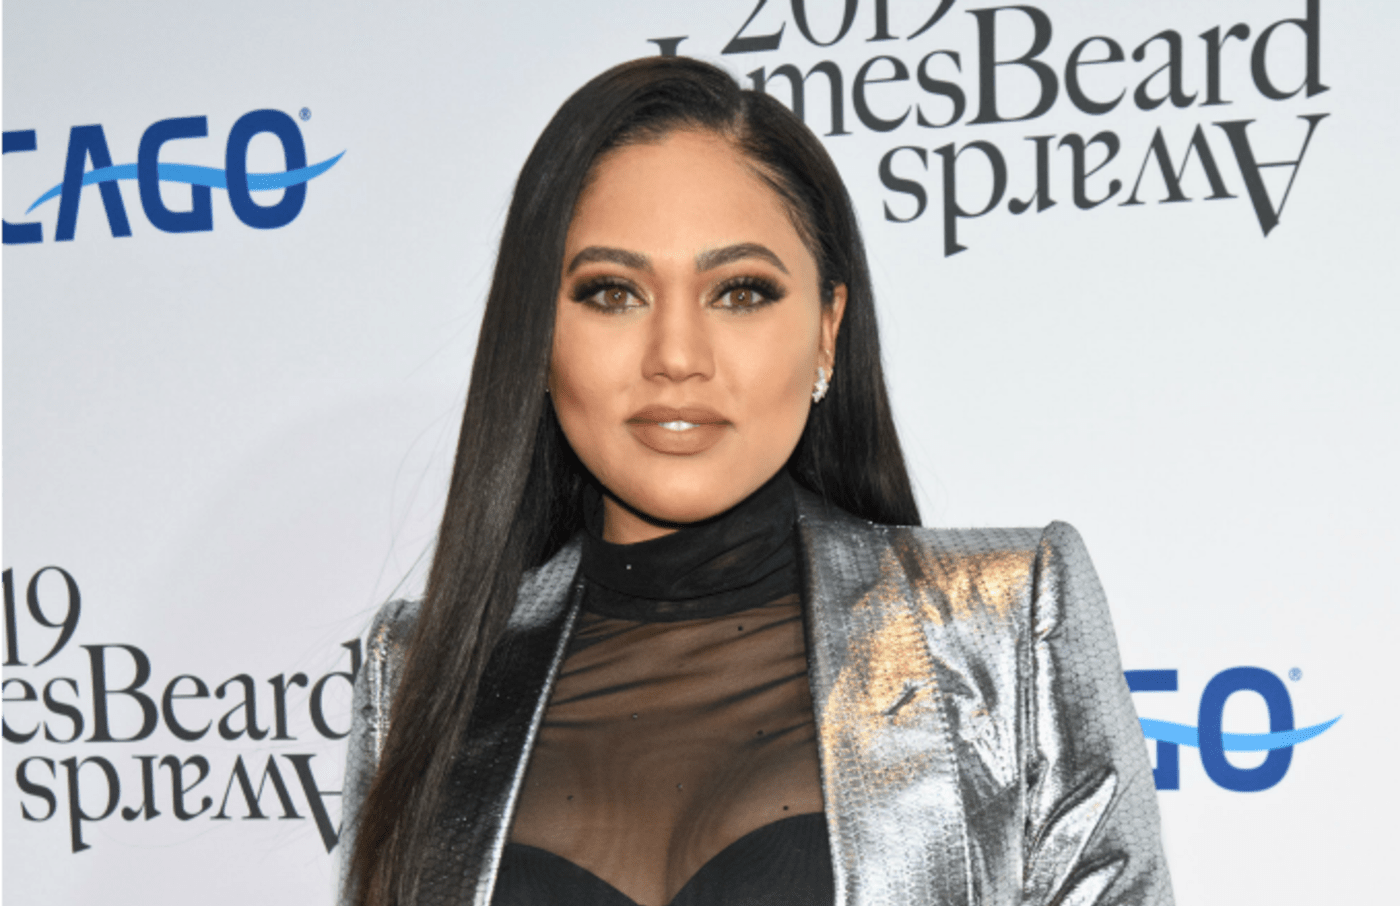 Ayesha Curry attends the 2019 James Beard Awards